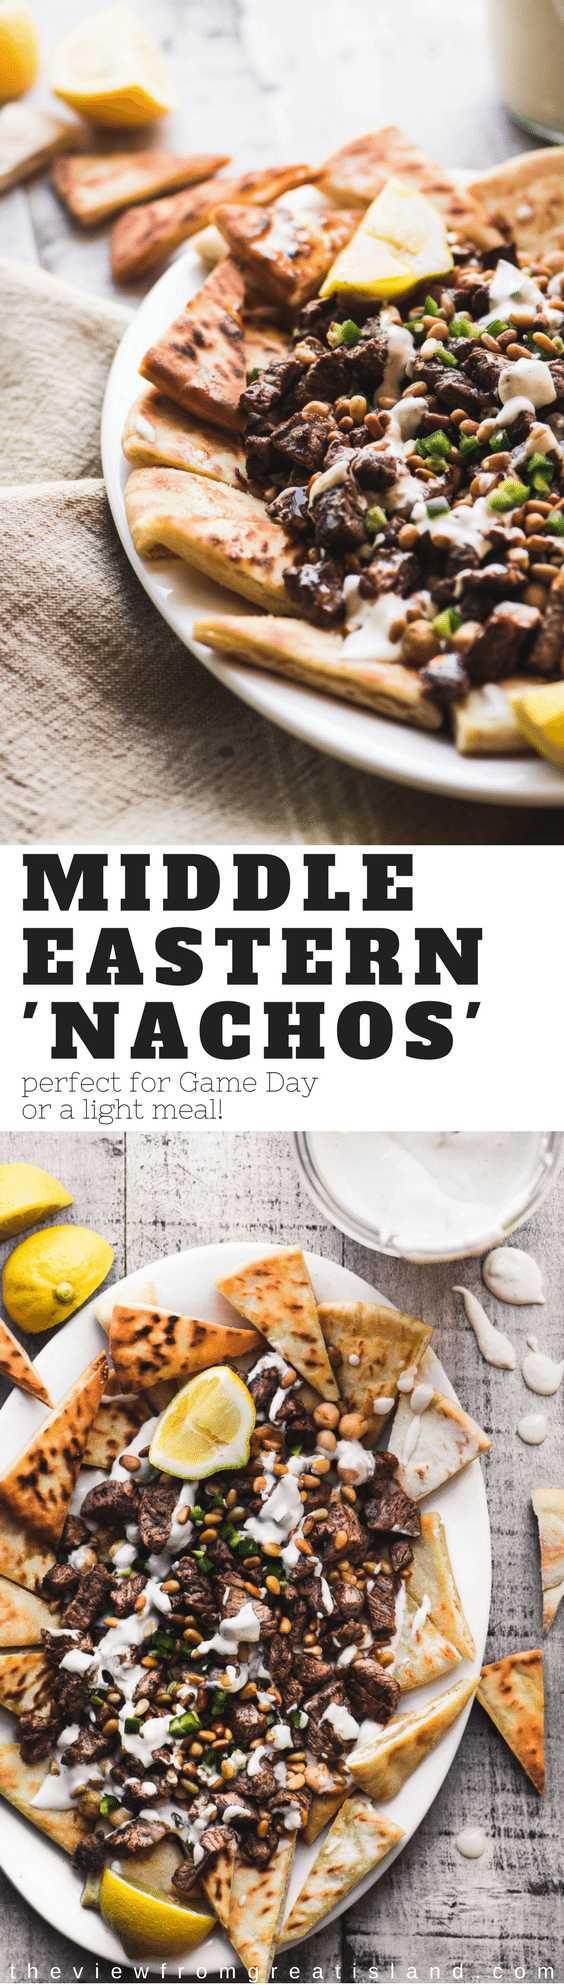 middle eastern nachos pin